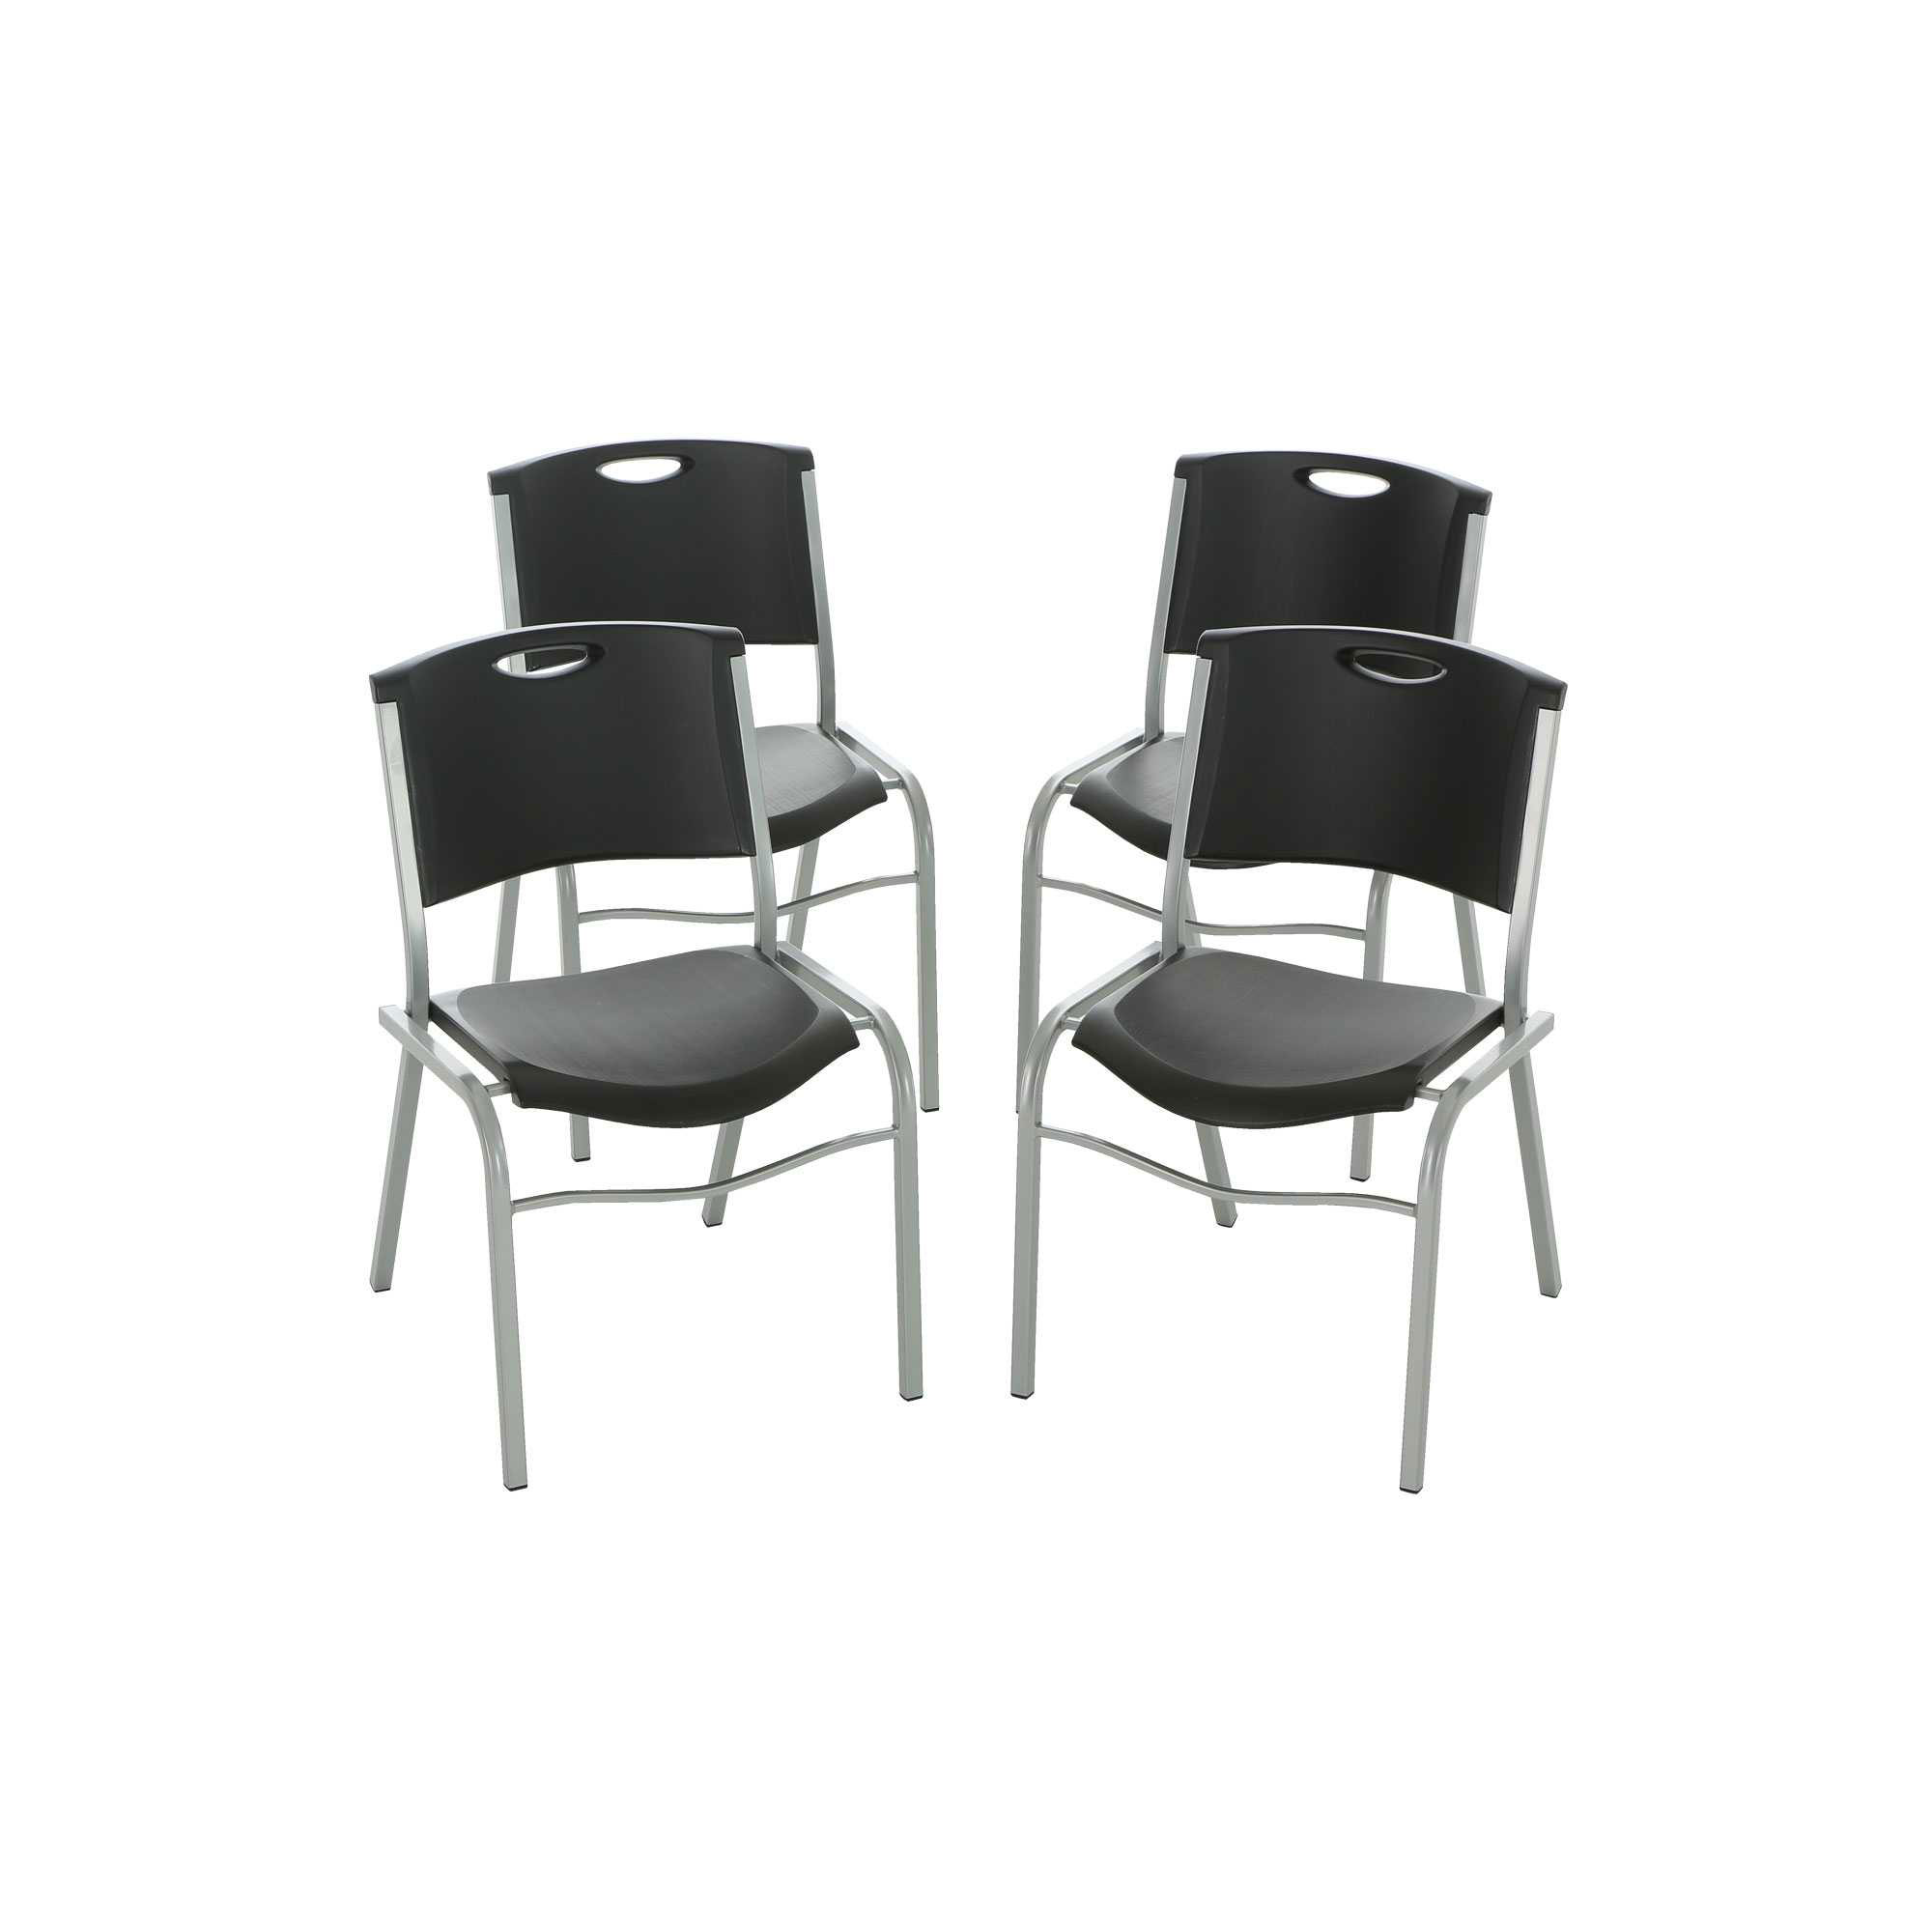 Beautiful Lifetime Stacking Chairs